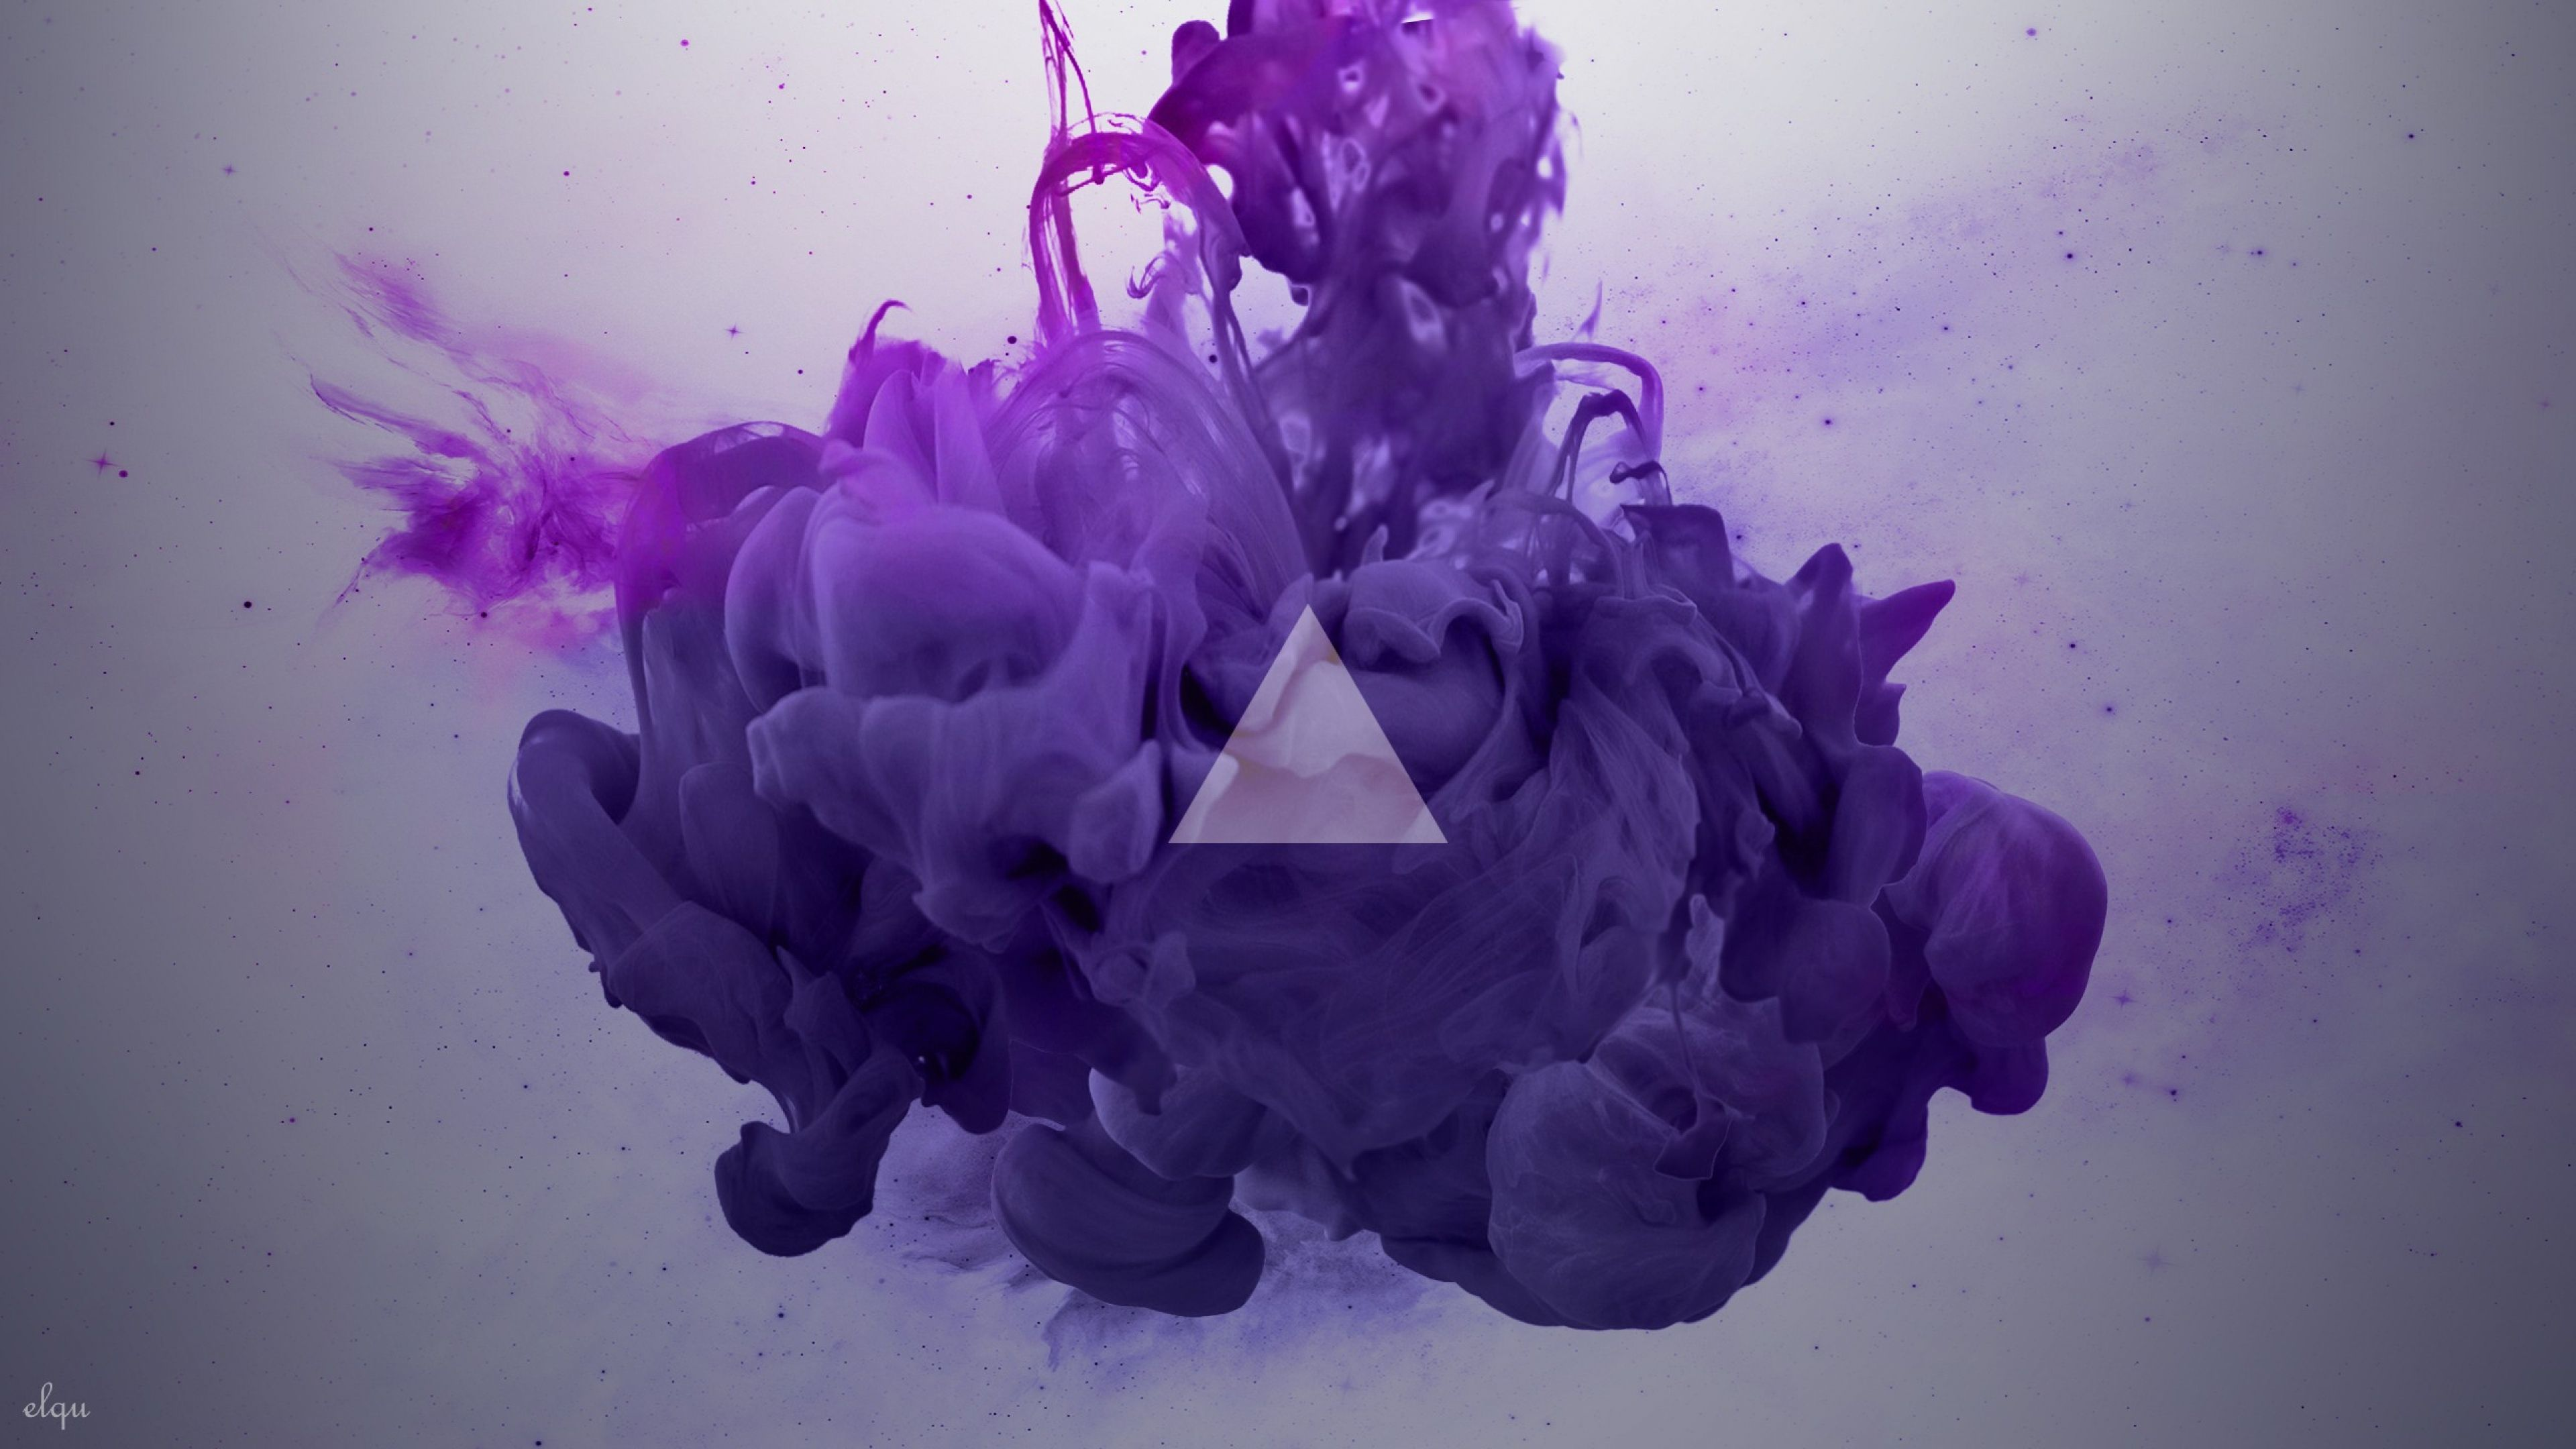 3840x2160 Wallpaper Smoke Triangle Lilac In 2019 Smoke